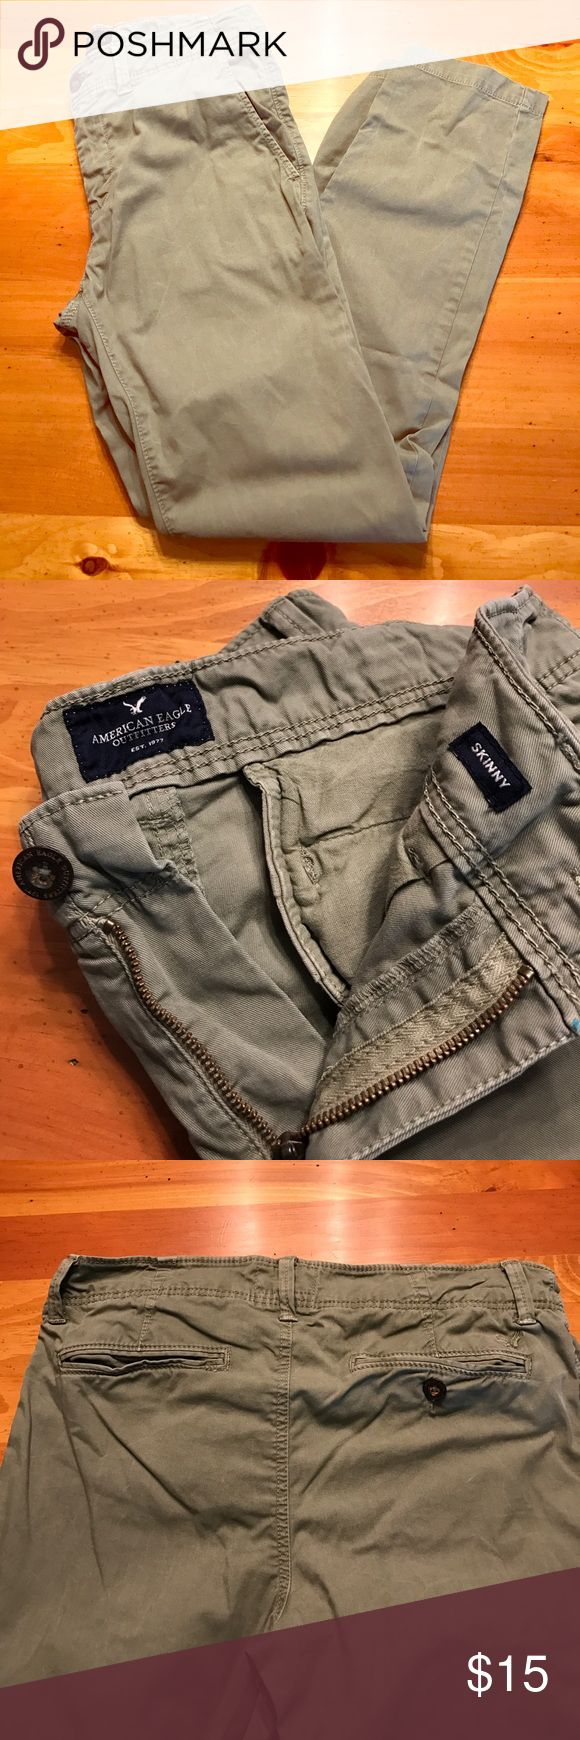 American Eagle chinos American Eagle light olive skinny Chino. 98% Cotton 2% Elastane. Only worn a few times. In excellent condition. American Eagle Outfitters Pants Chinos & Khakis